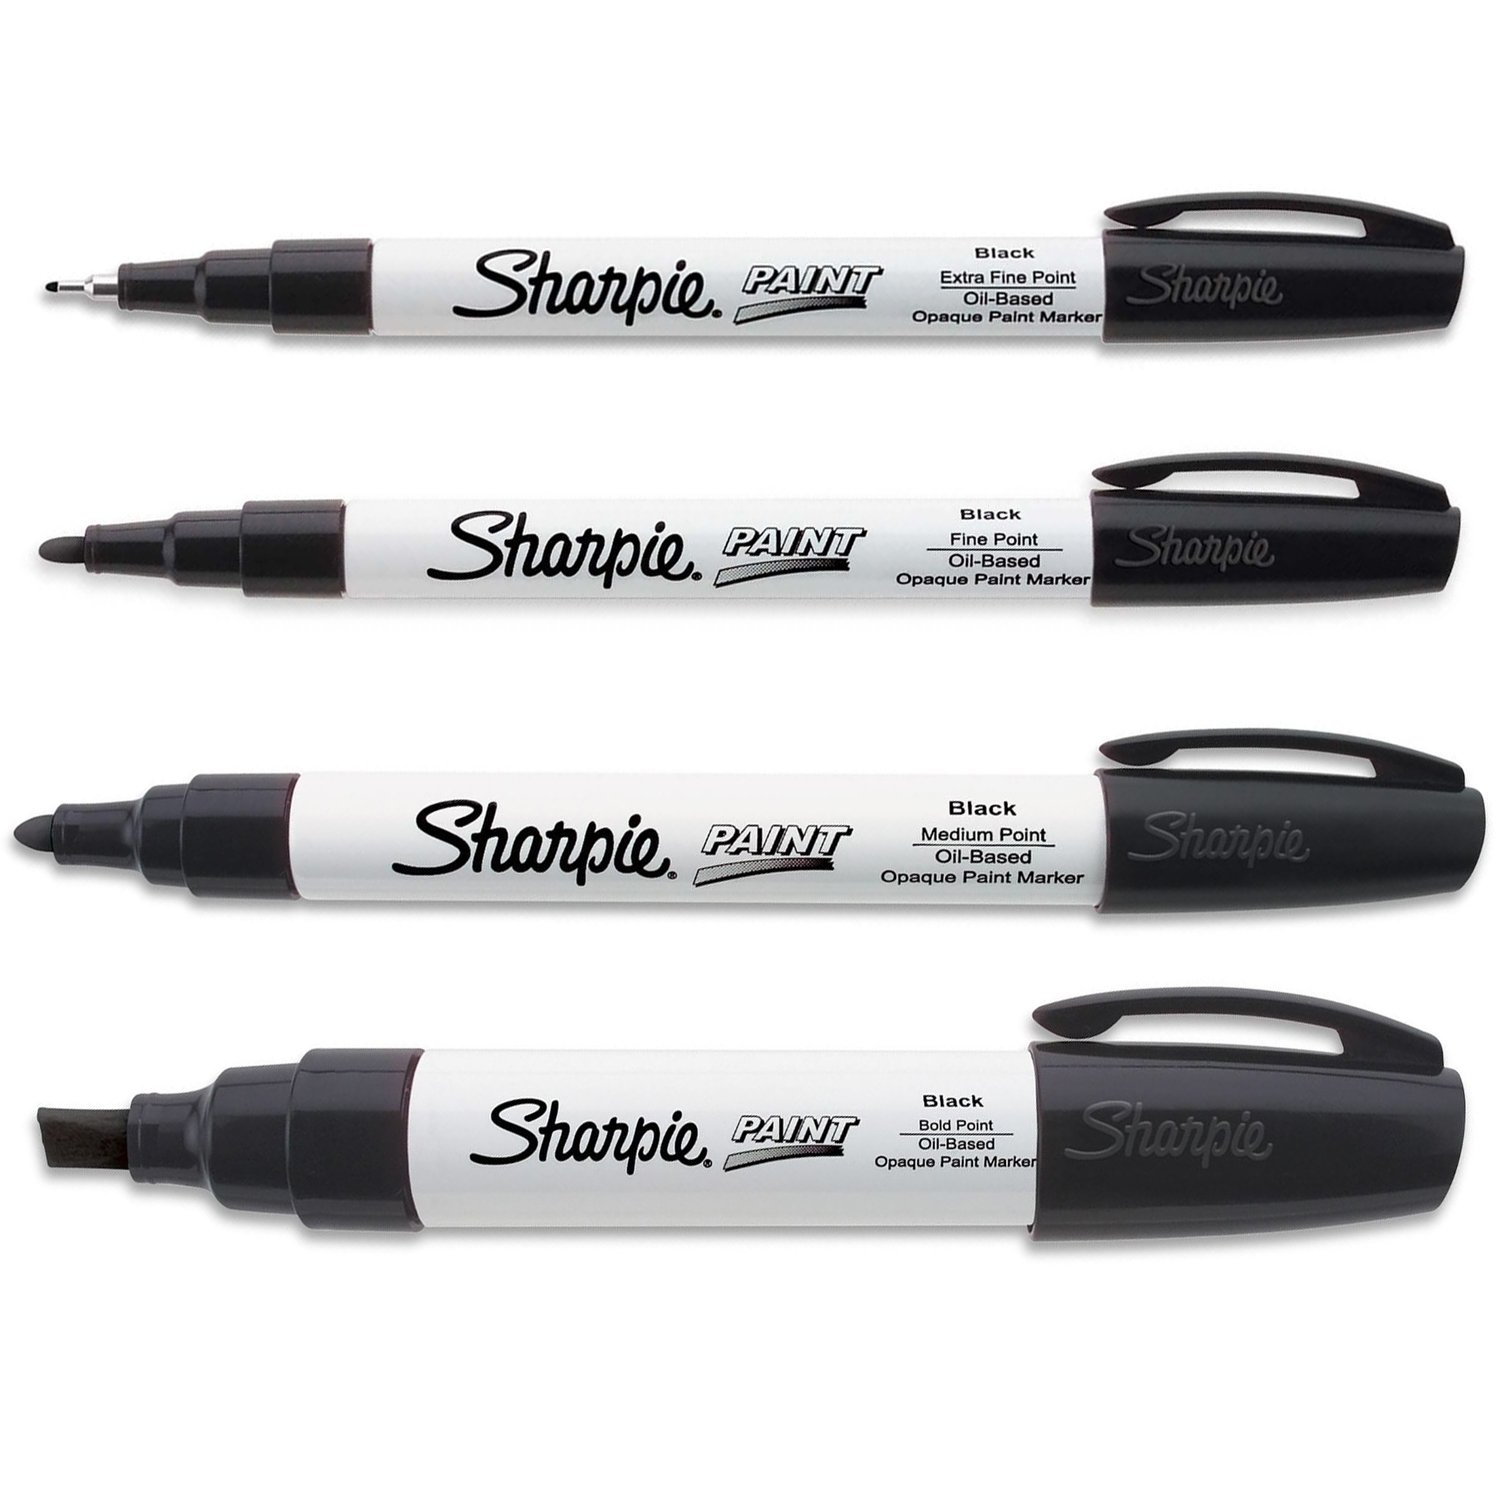 Sharpie Paint Marker Oil Based Black All Sizes Kit X-Fine, Fine, Medium Bold by Sharpie